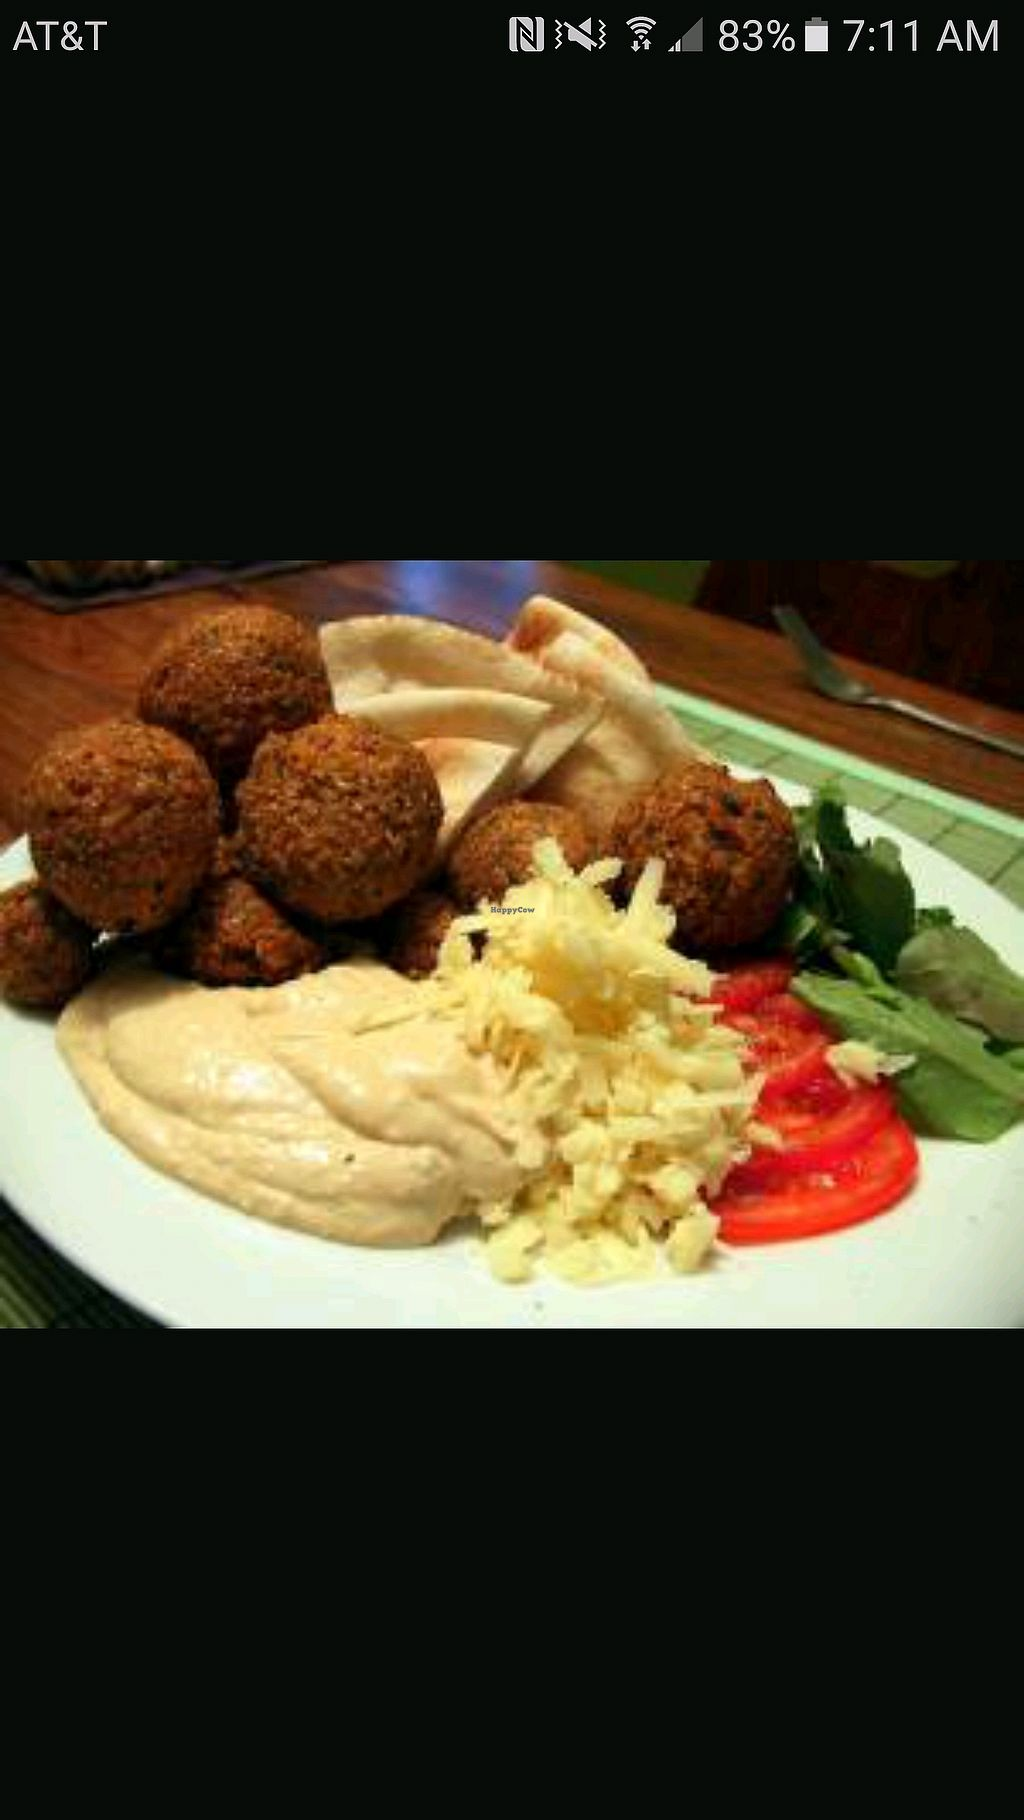 "Photo of Falafel Den  by <a href=""/members/profile/LeanPartian"">LeanPartian</a> <br/>Falafel with hummus <br/> December 9, 2017  - <a href='/contact/abuse/image/92130/333609'>Report</a>"